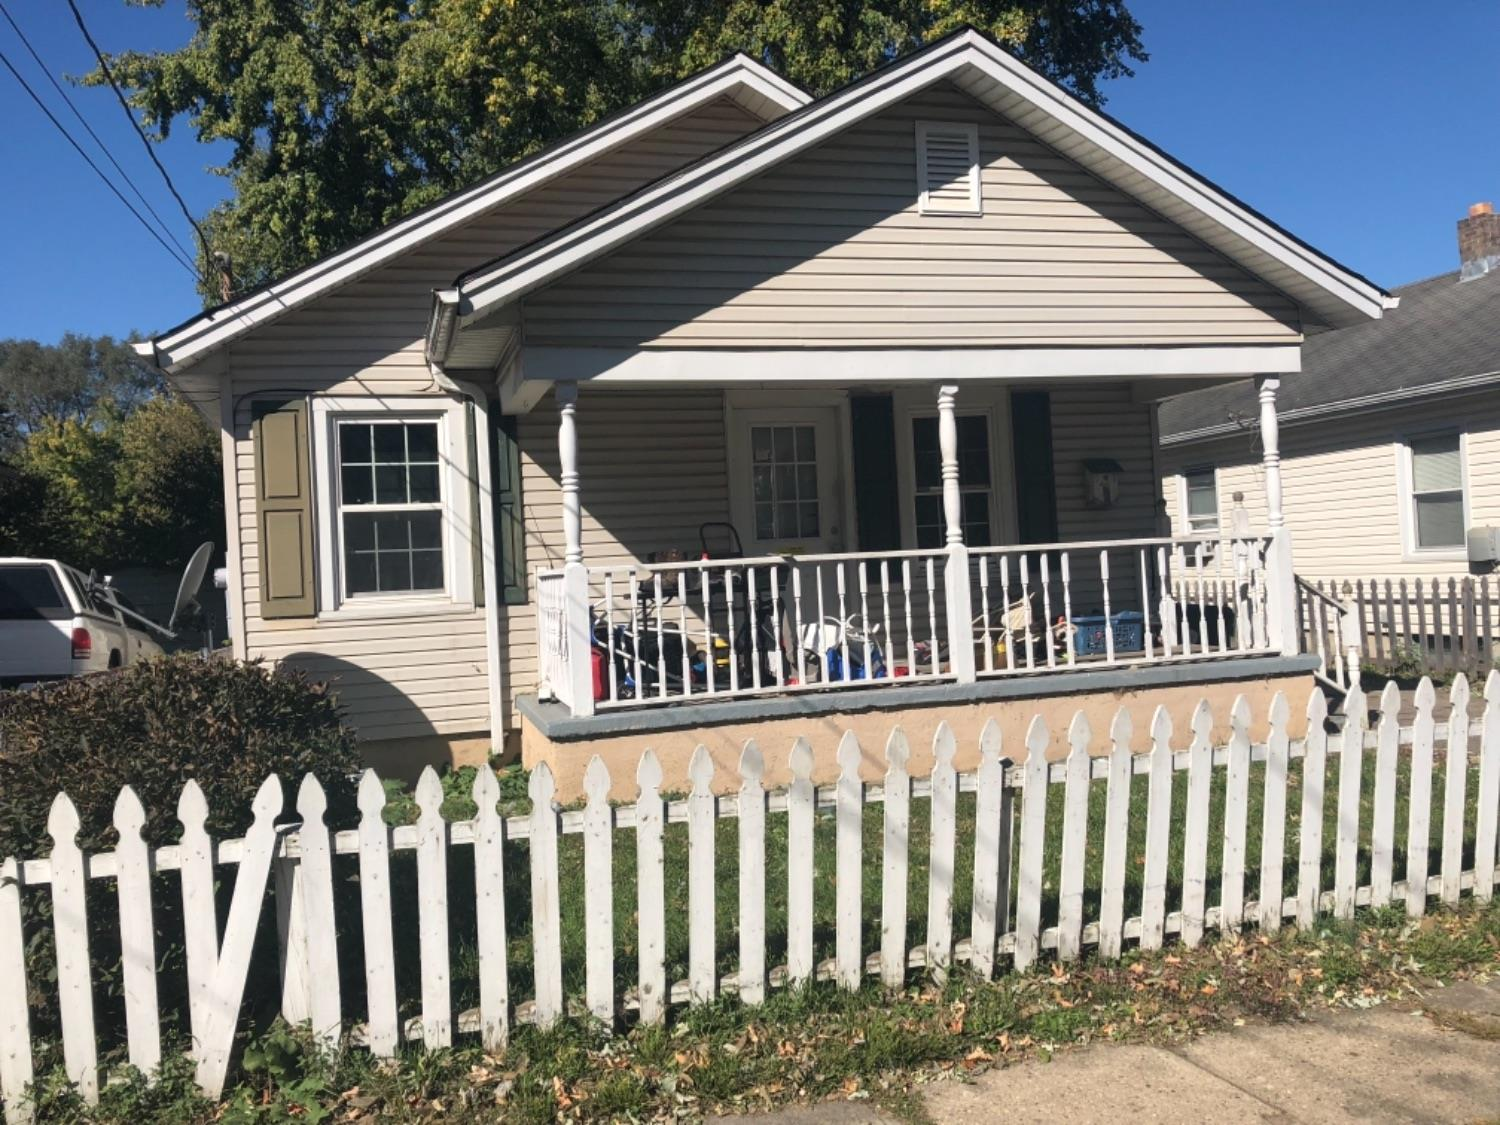 154 Howman Ave St. Clair Twp., OH